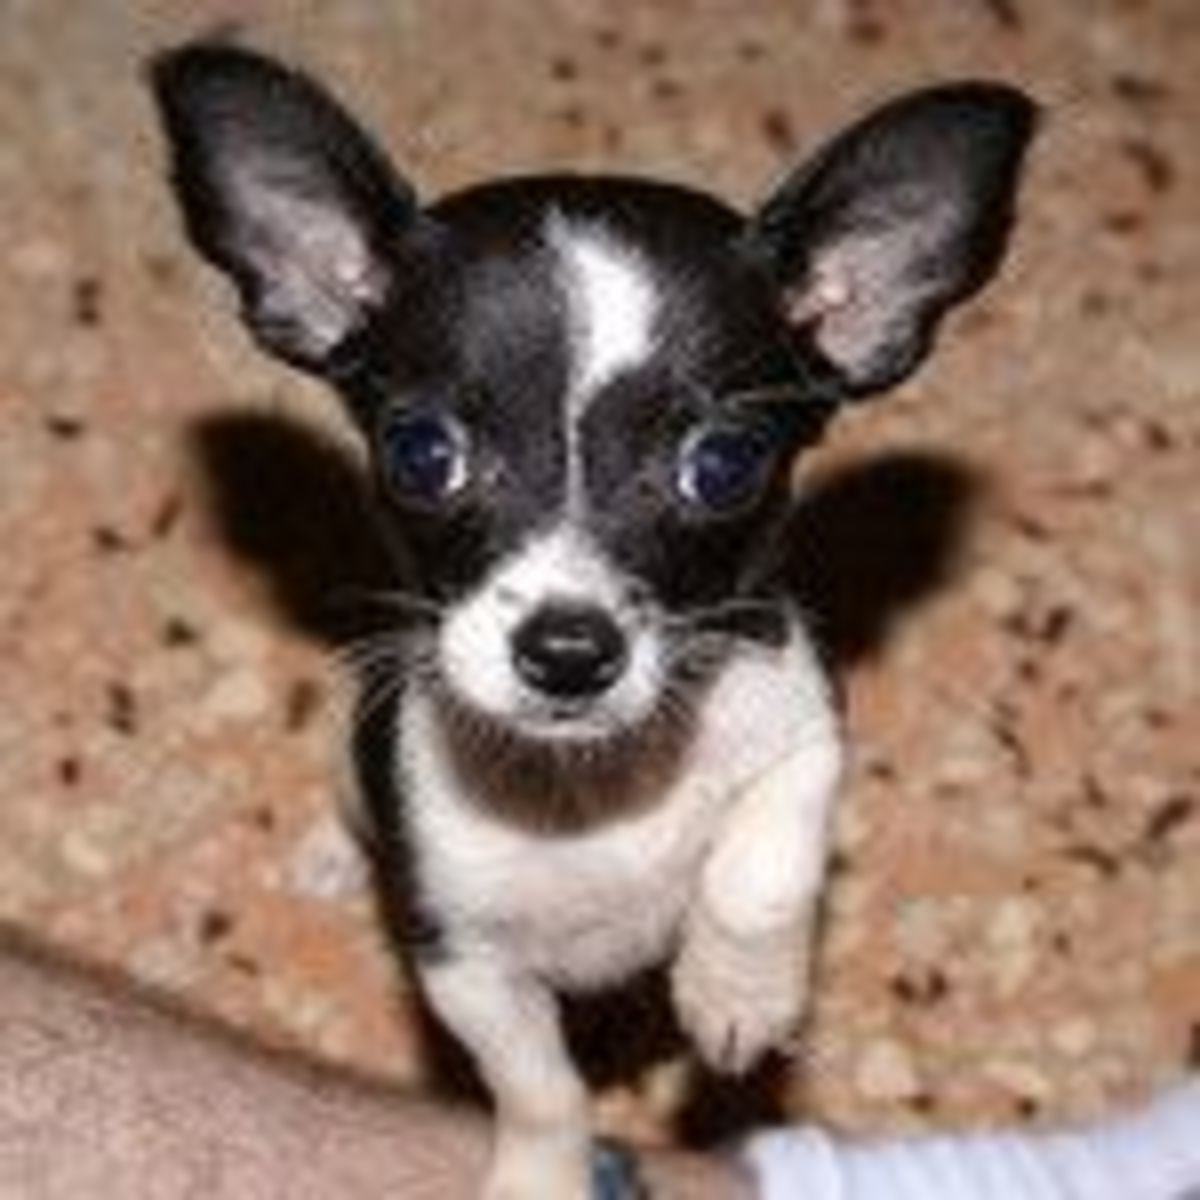 Chihuahua puppy - EARS by NeitherFanboy [CC BY-SA 2.0] on Flickr